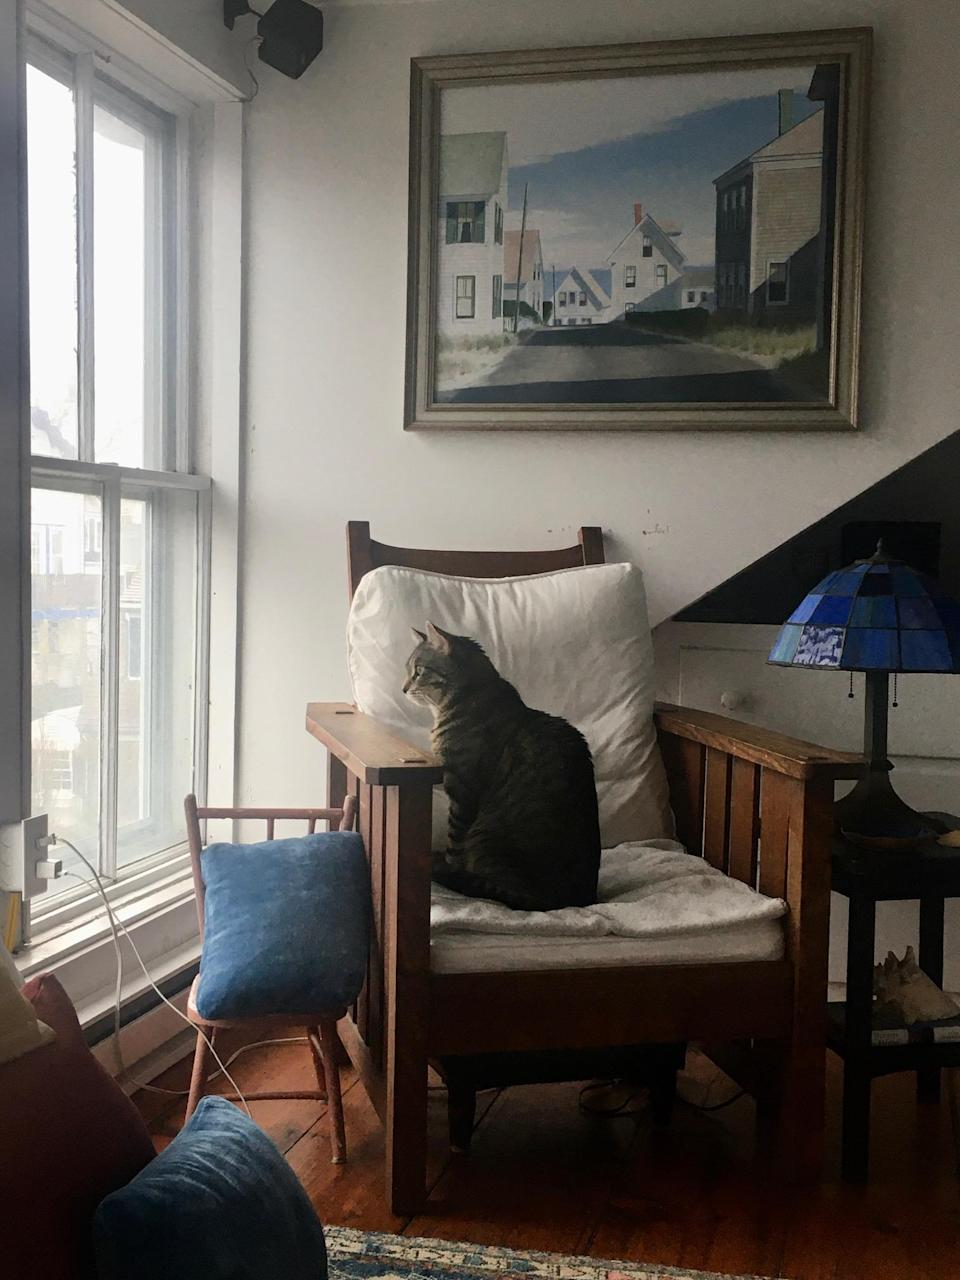 Beth Greenfield and her family have a newly adopted cat to keep them company. (Photo: Beth Greenfield)